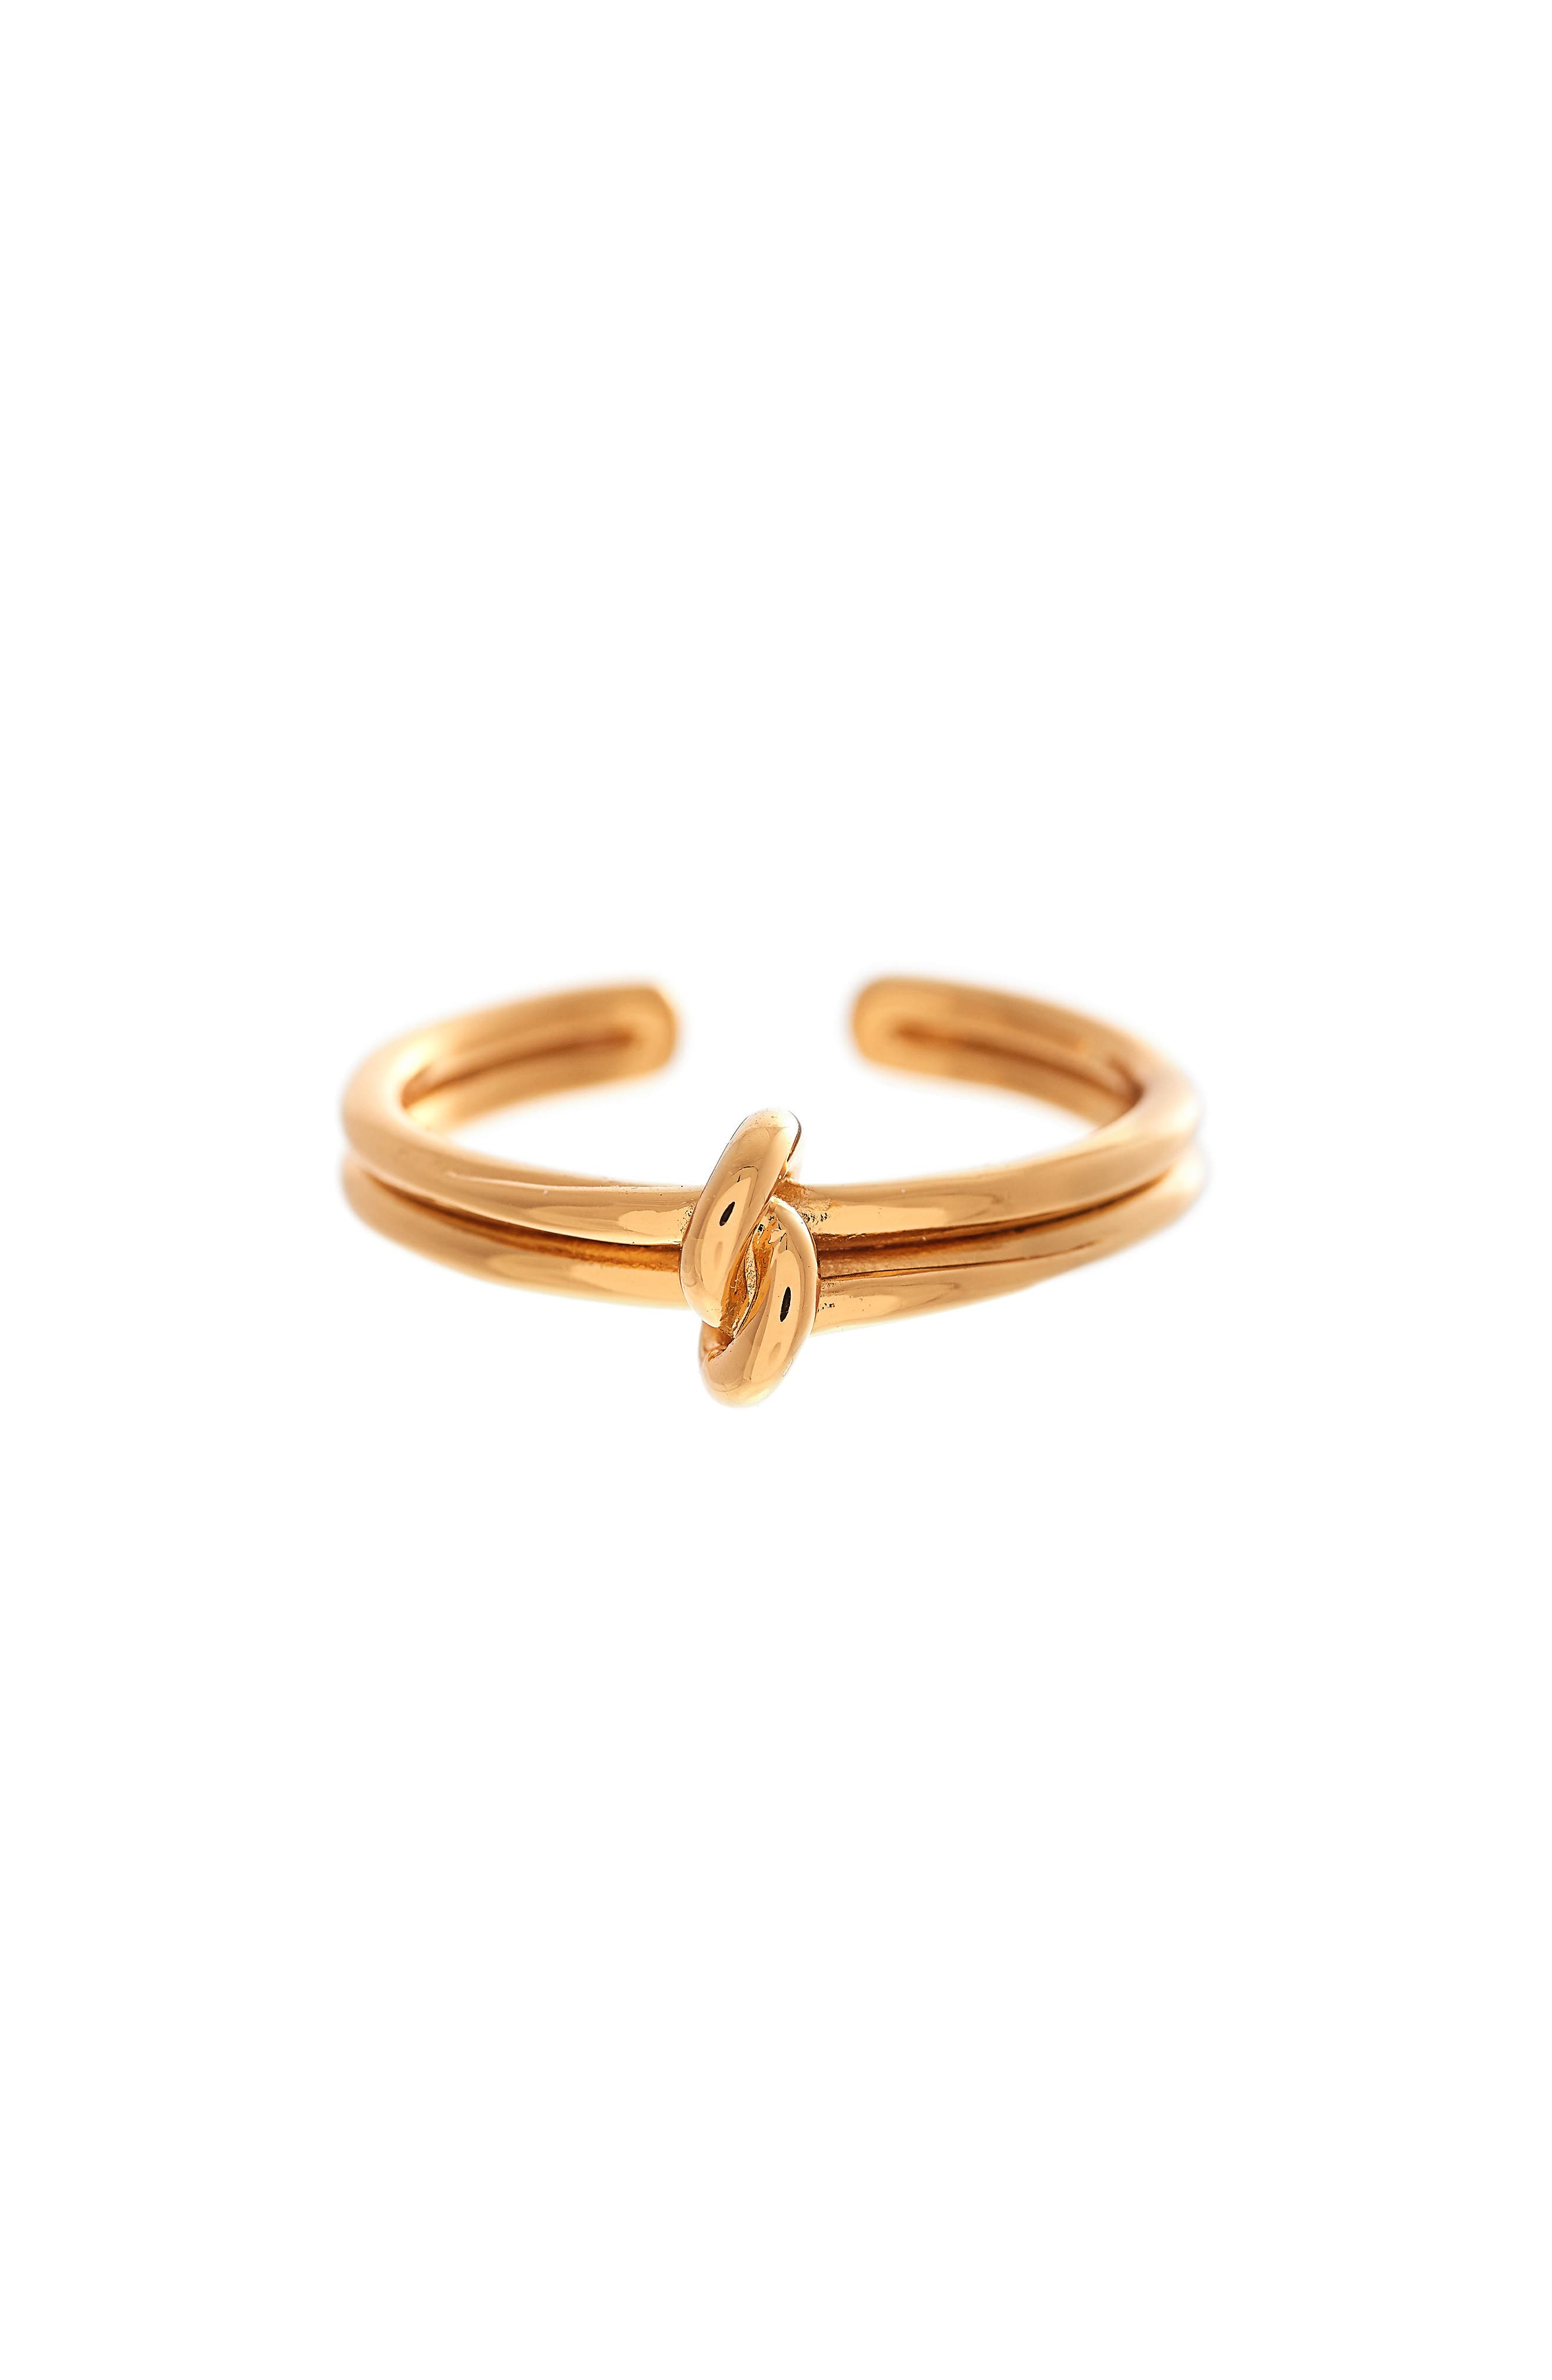 Forget Me Knot Ring,                         Main,                         color, Gold